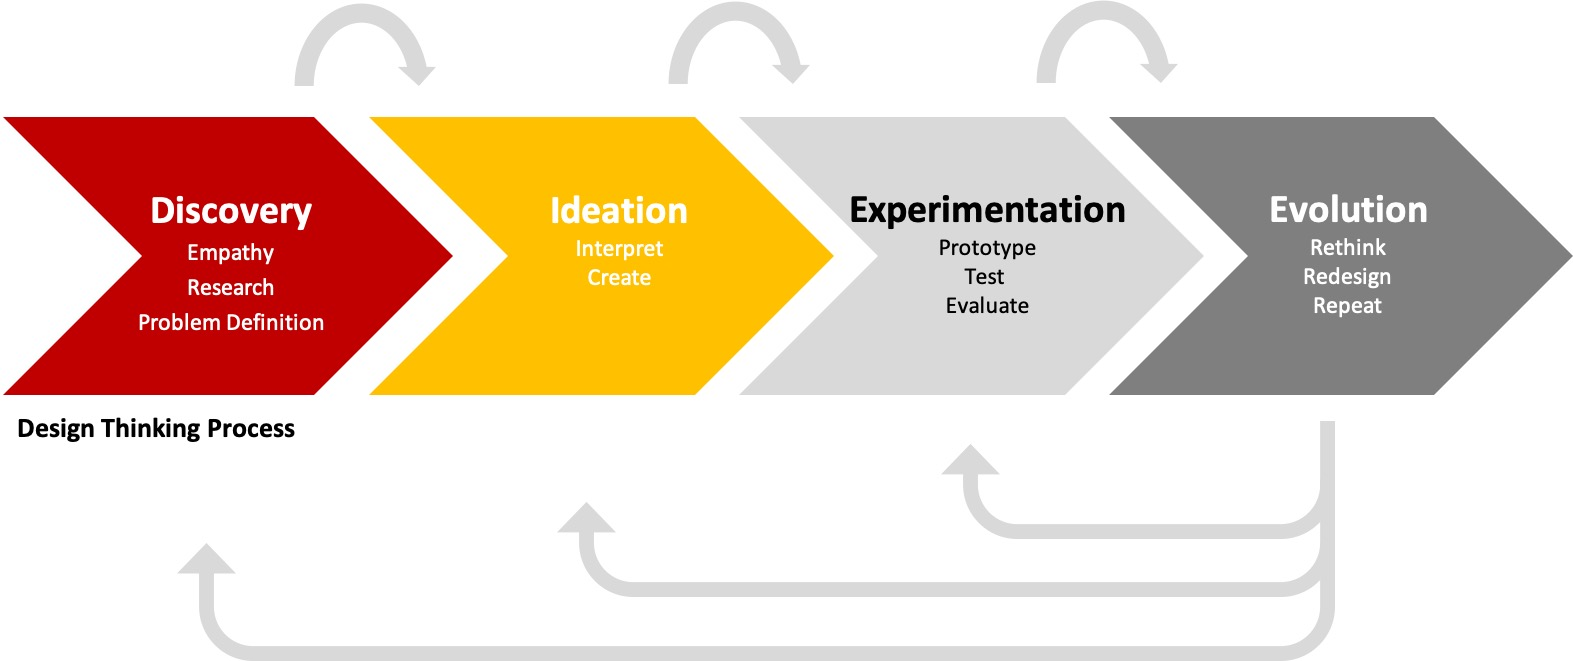 Design Thinking represented by arrows pointing right - Discovery (Empathy, Research, Problem Definition), Ideation (Interpret, Create), Experimentation (Prototype, Test, Evaluate), and Evolution (Rethinking, Redesign, Repeat)